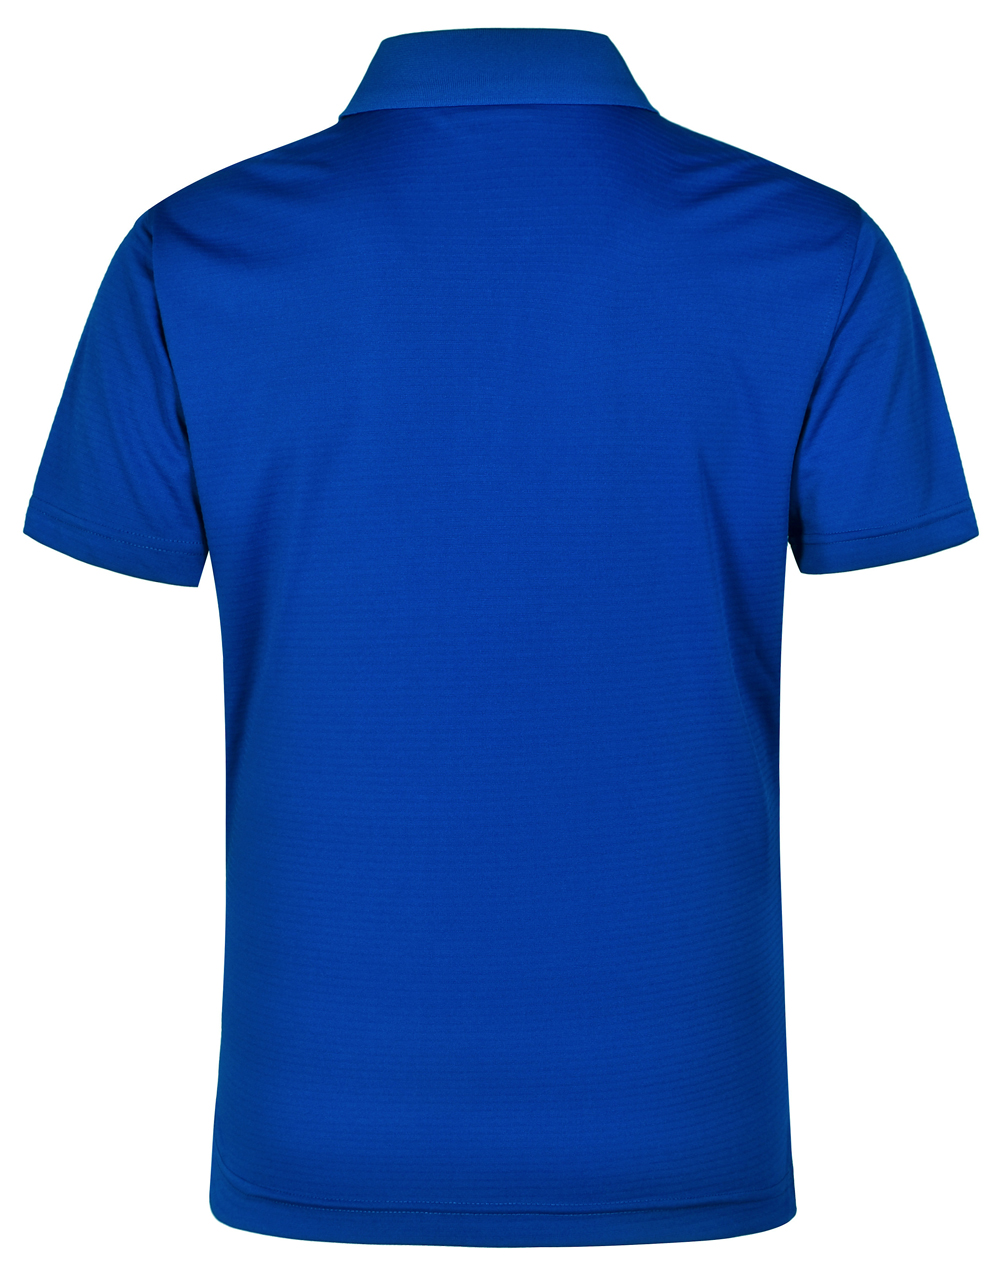 https://s3-ap-southeast-1.amazonaws.com/ws-imgs/POLOSHIRTS/PS75_Royal_back_l.jpg